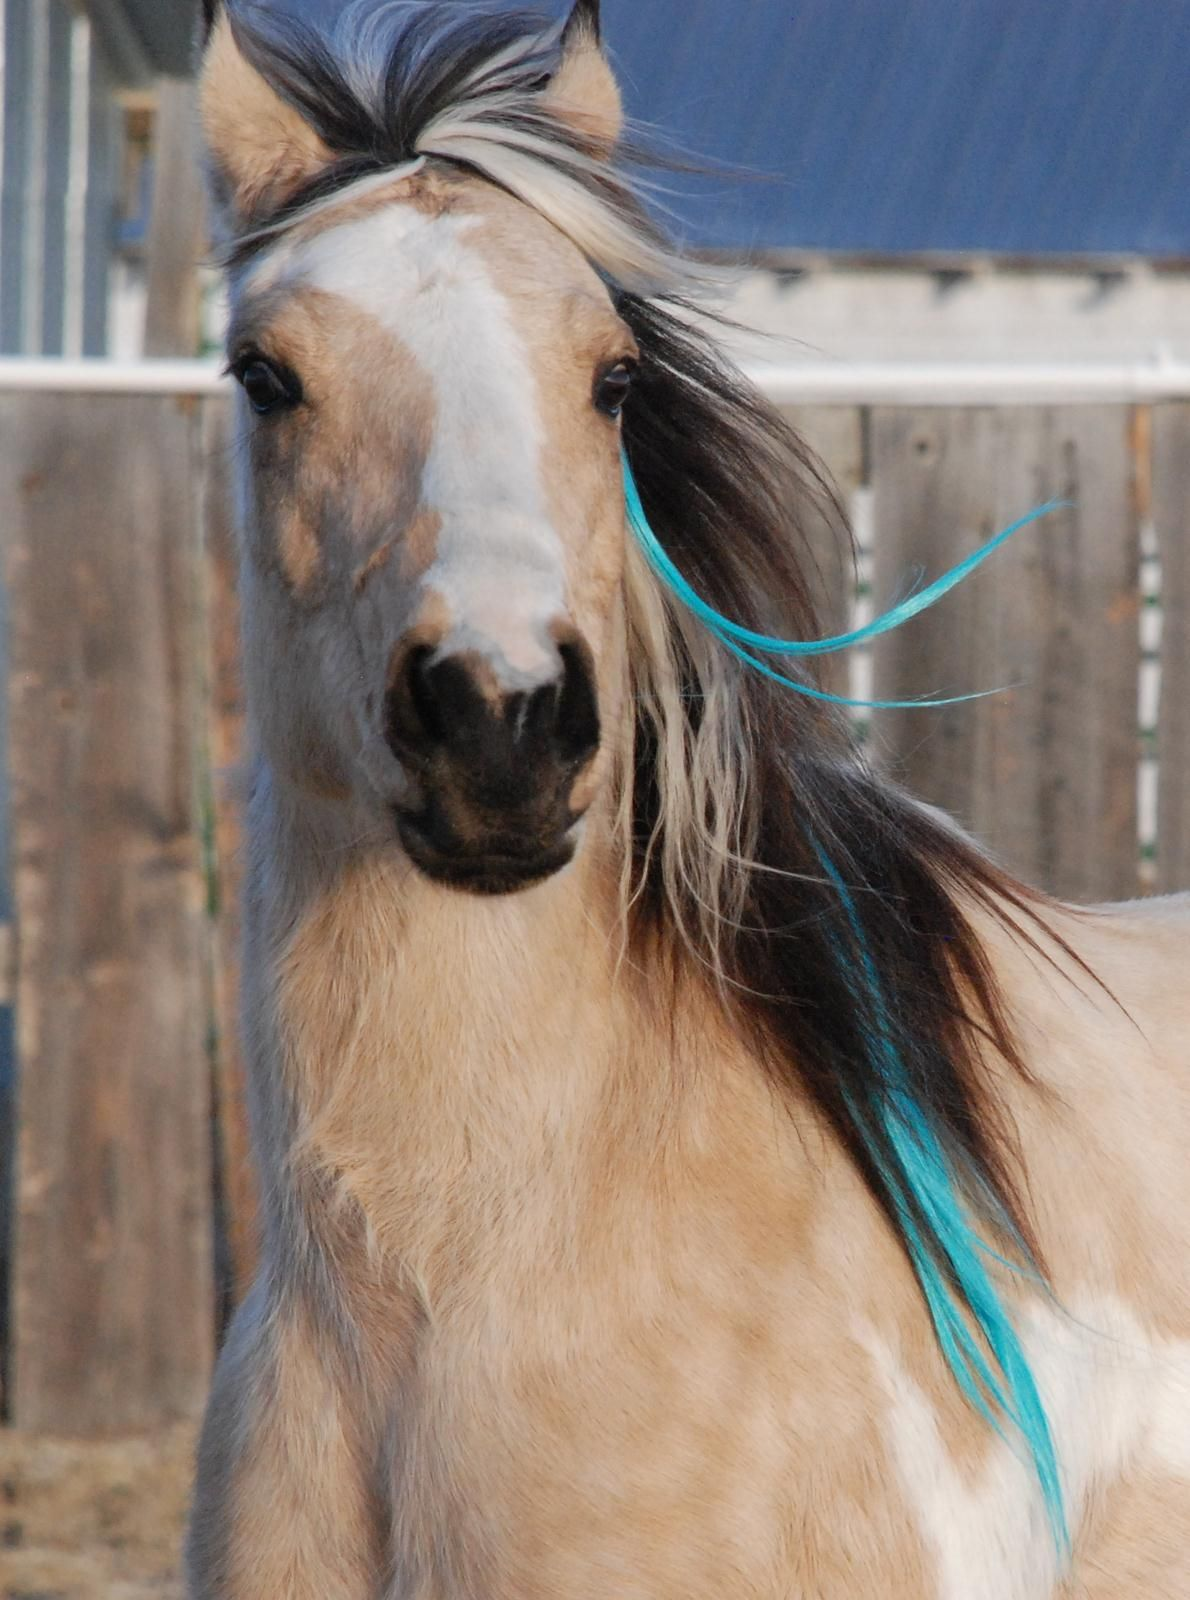 Horses With Long Manes And Tails Rainbow Colored Mane And Tail